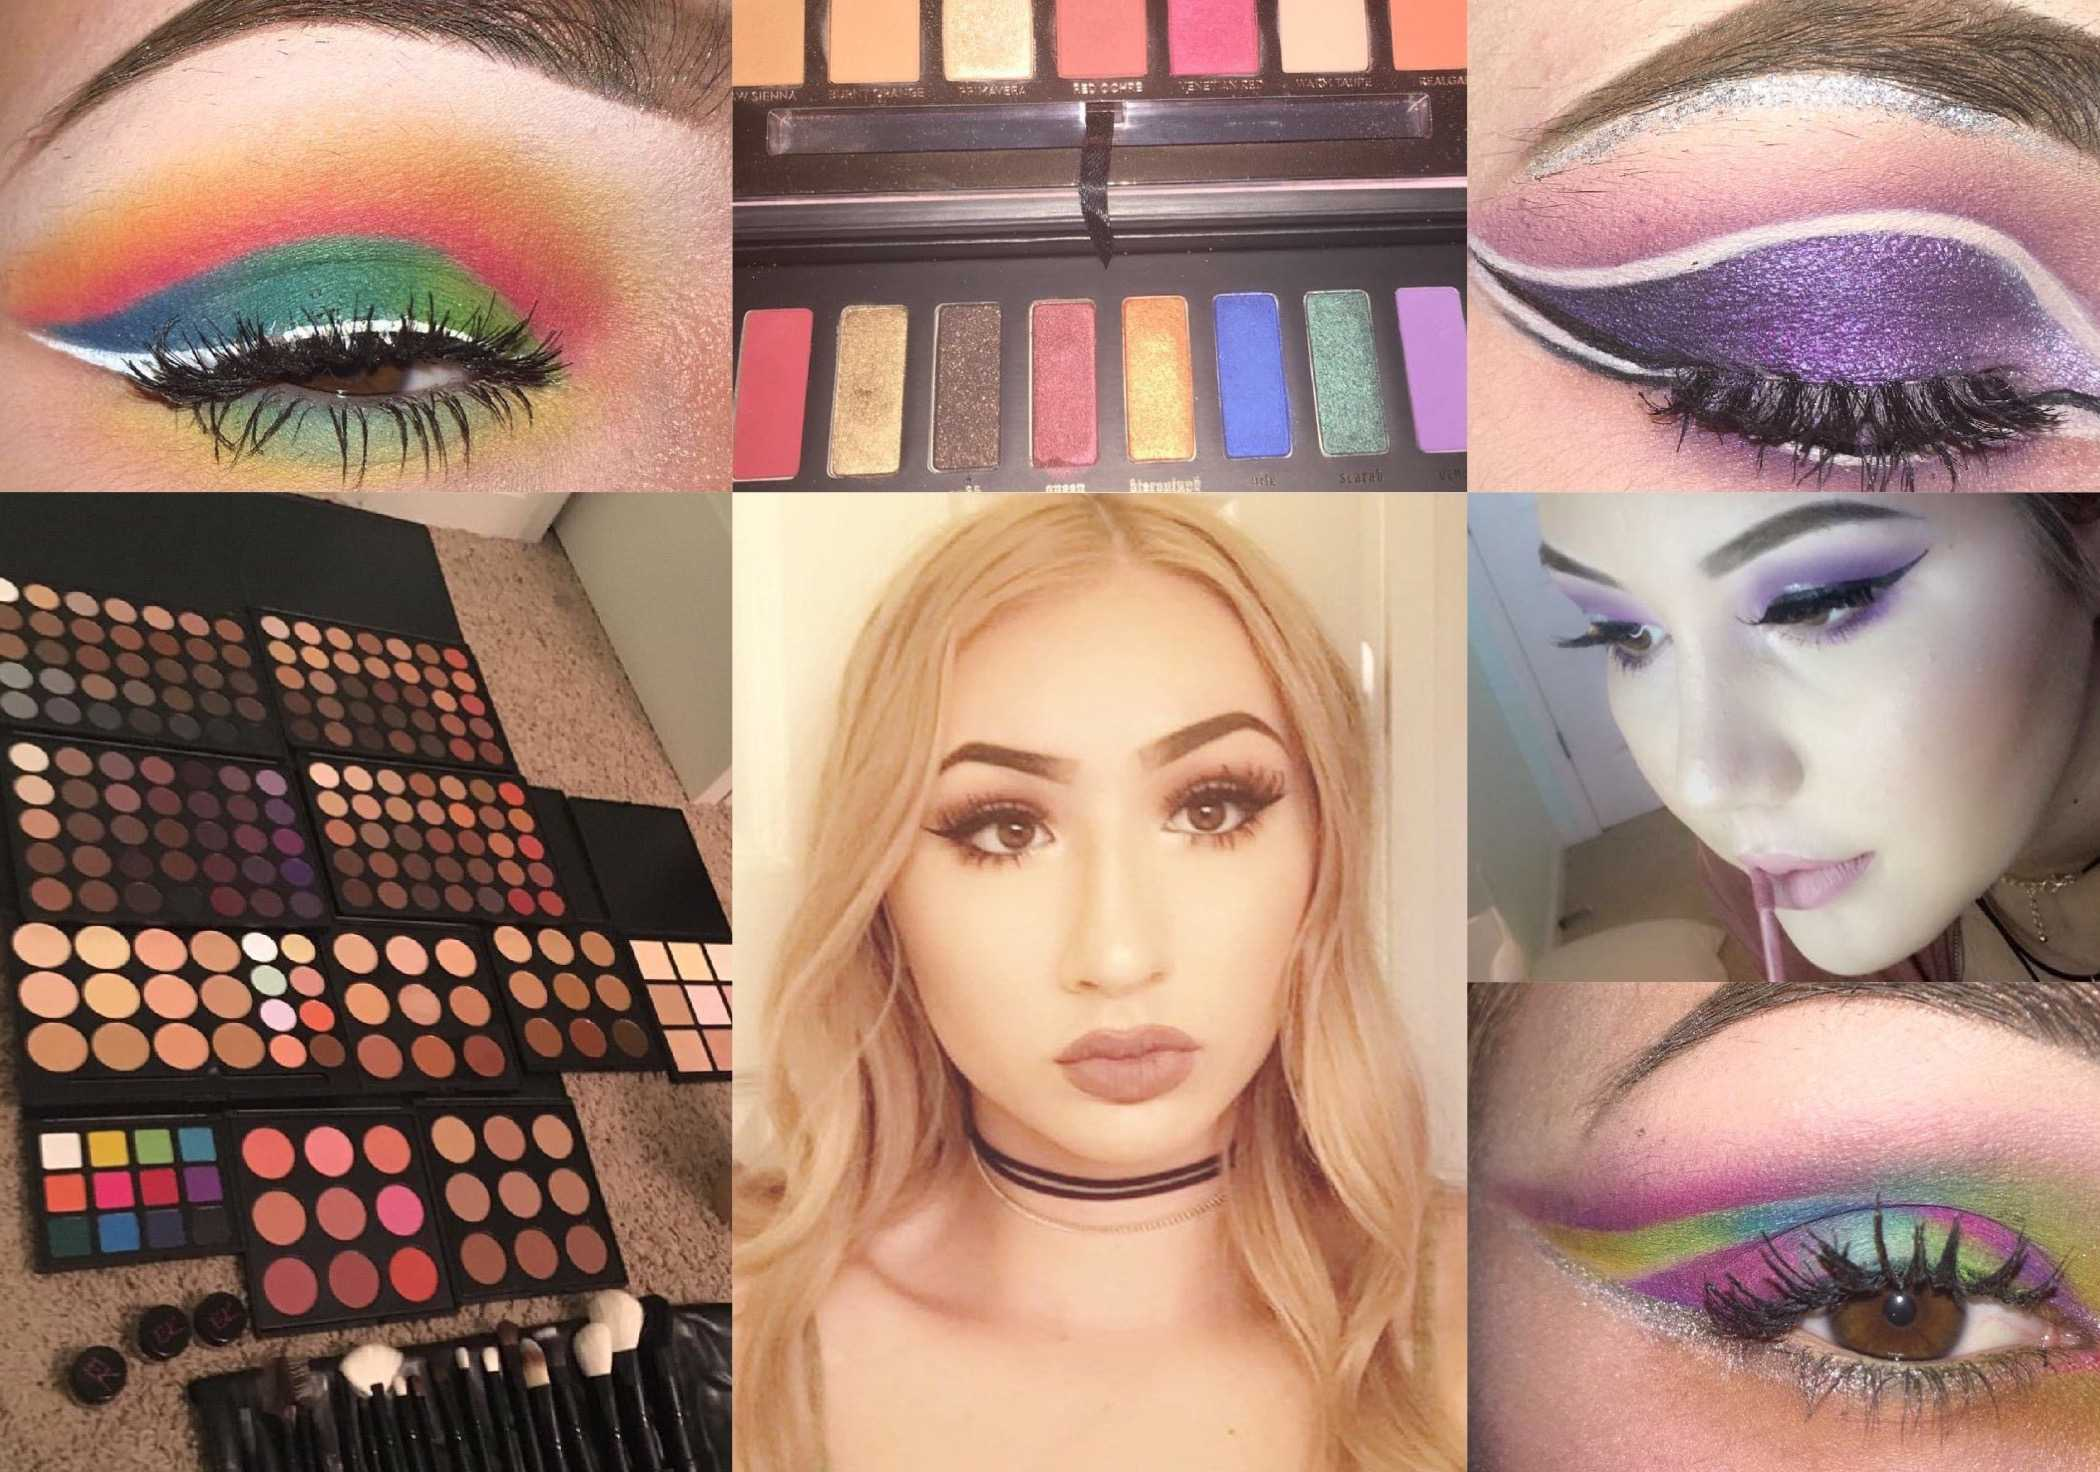 Thoughout, Roberts makeup journey she has been able to try many different styles and expand her collection.